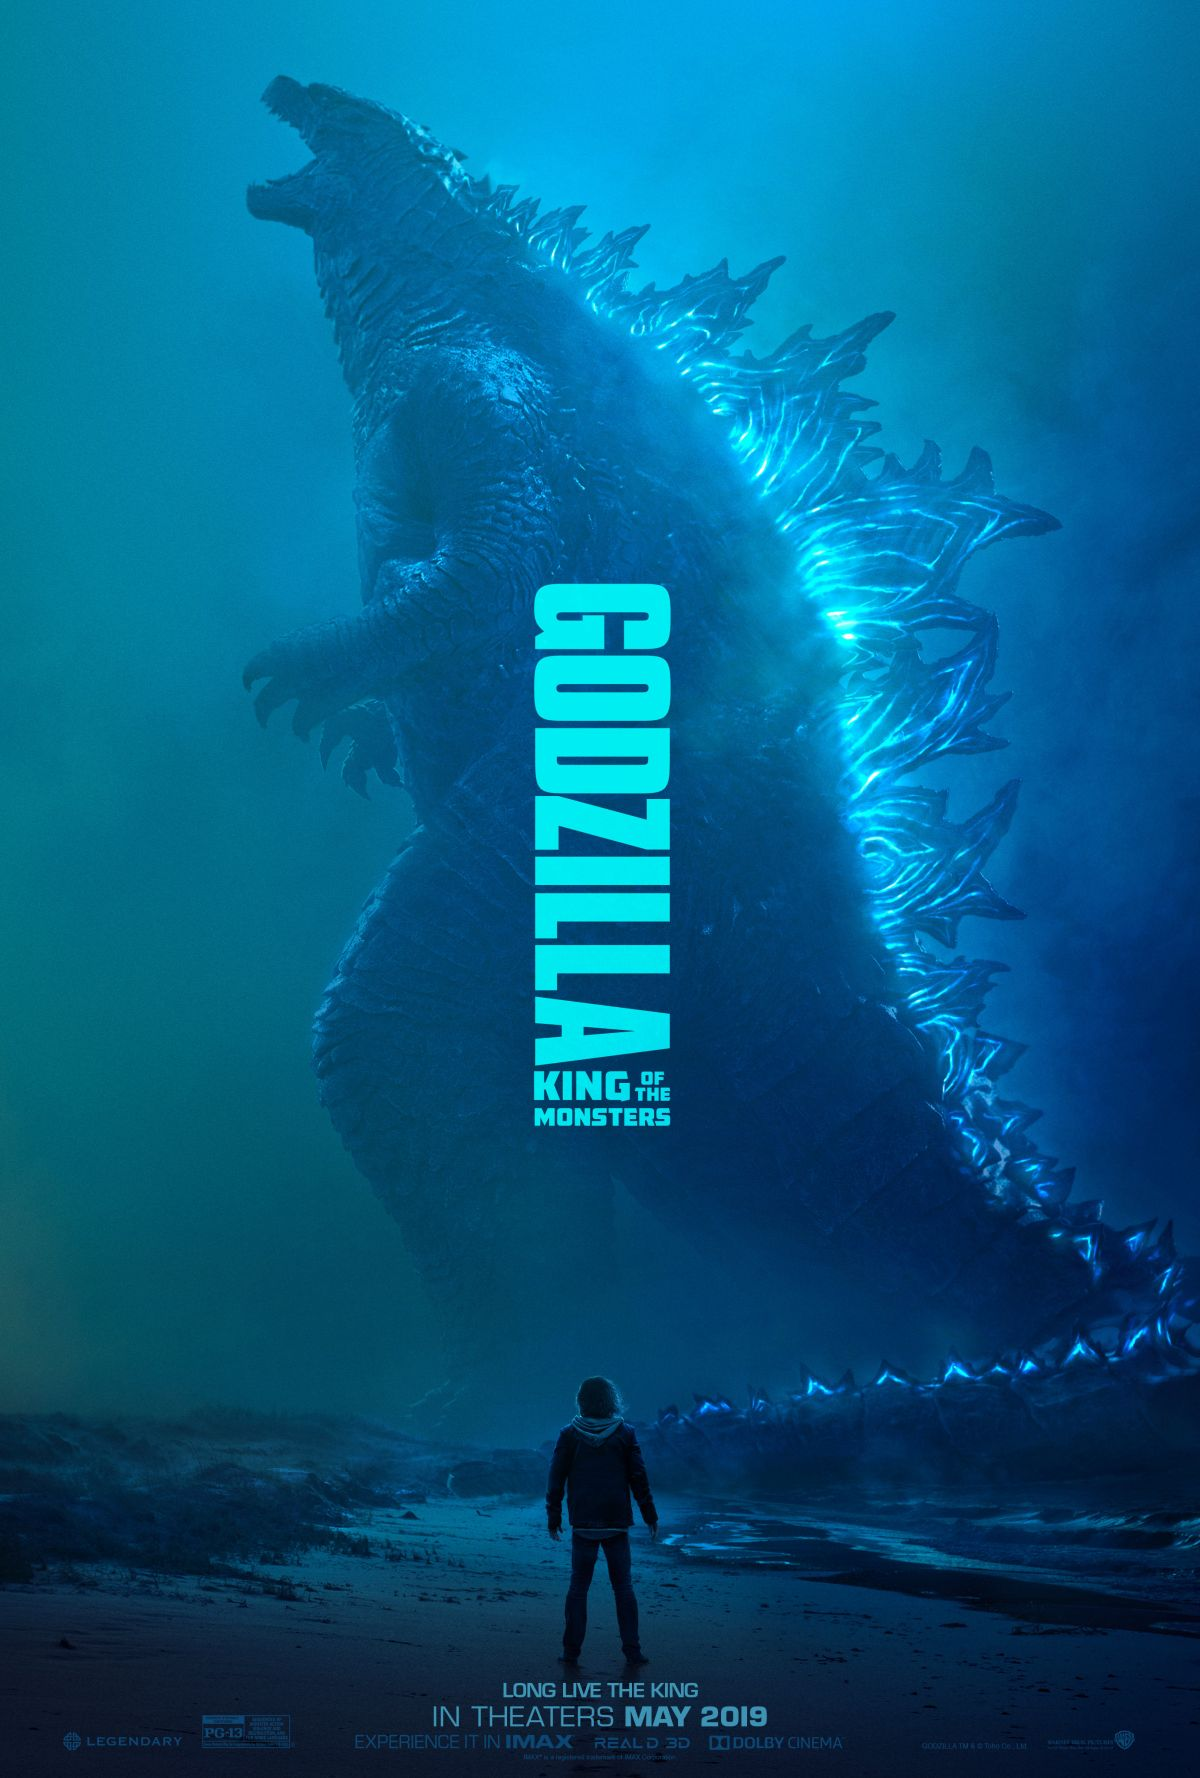 Godzilla II King of the Monsters Trailer & Poster